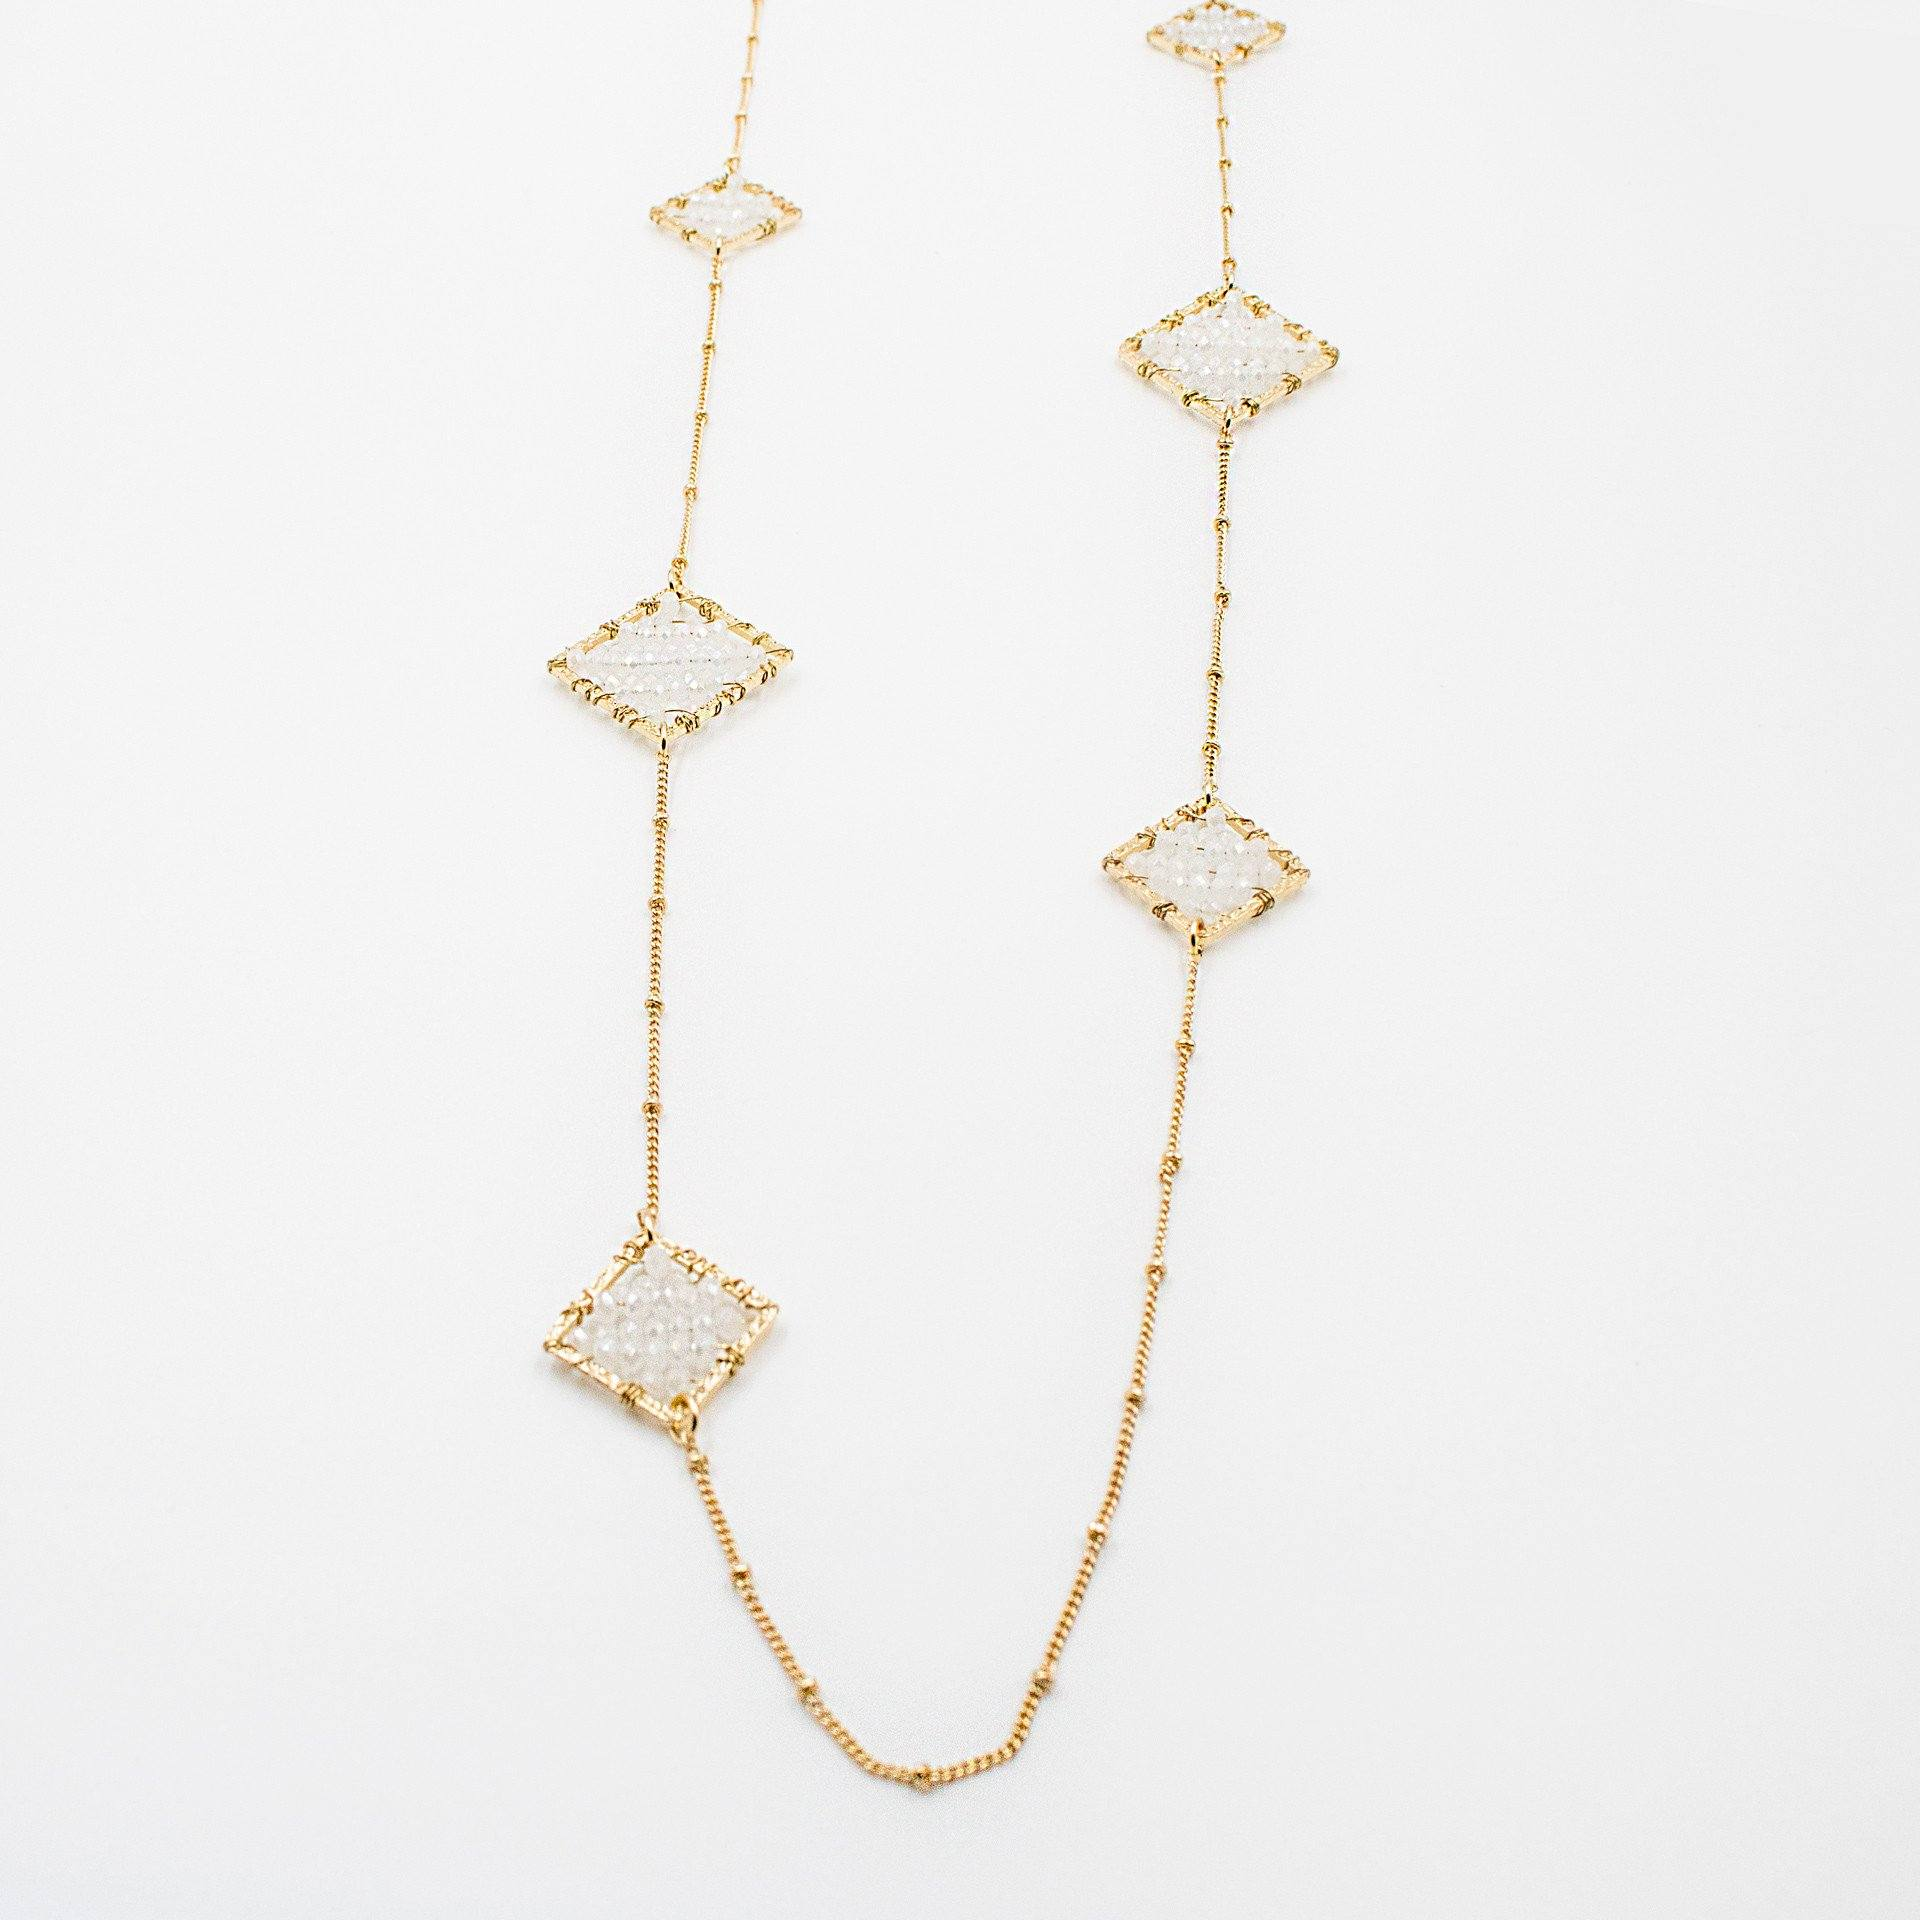 'Mara' Triangle Necklace - Arlo and Arrows